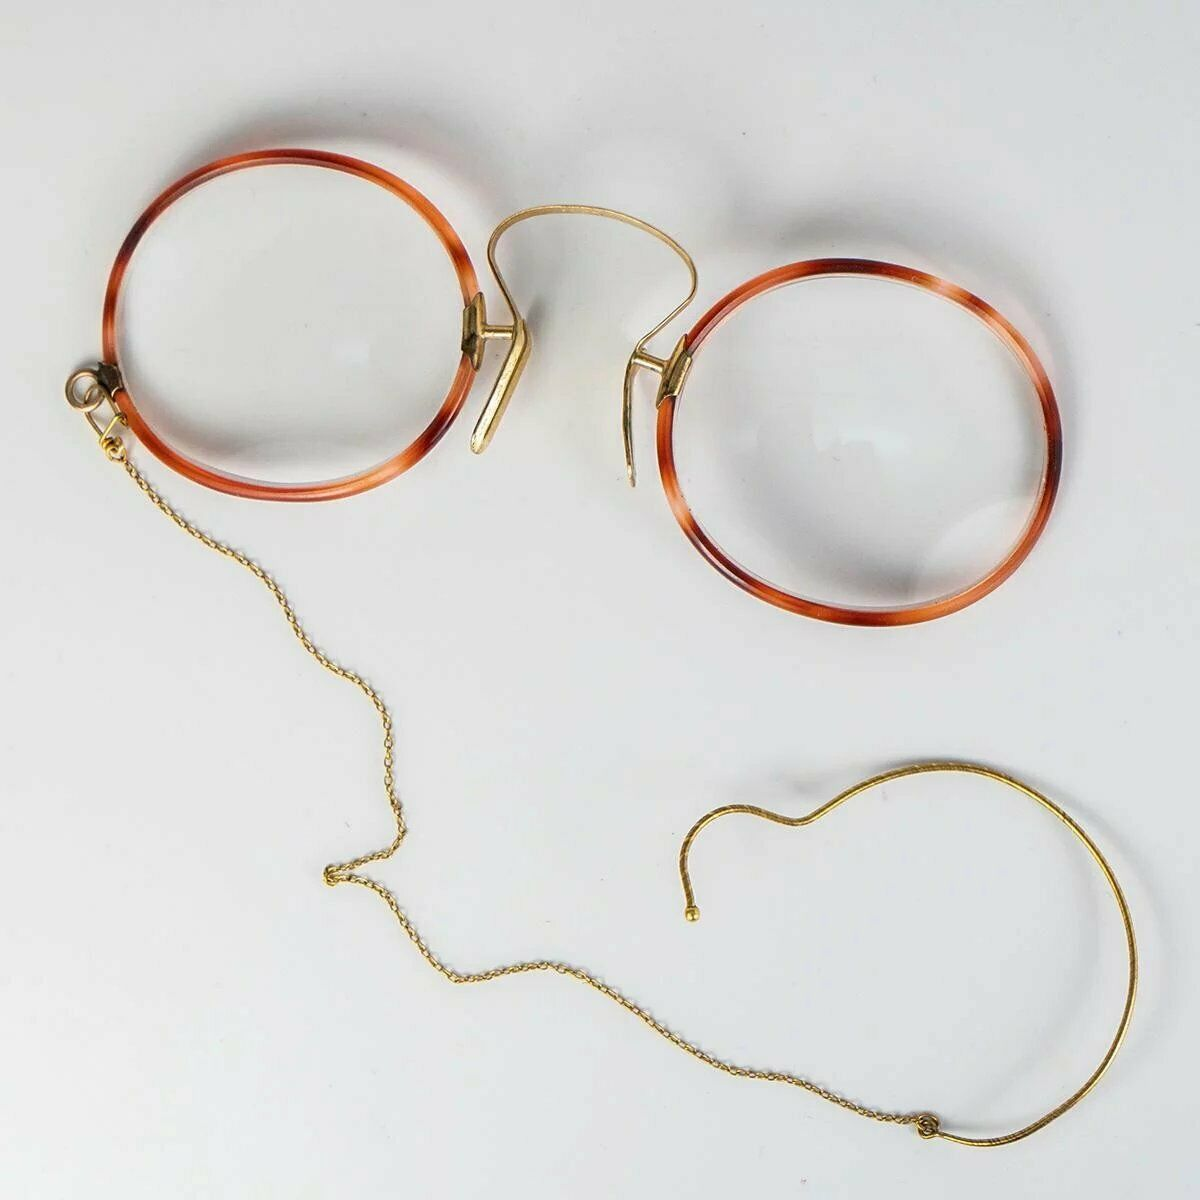 Antique 14k and 18k Gold Edwardian Spectacles, Pince-Nez with chain and Ear Hook